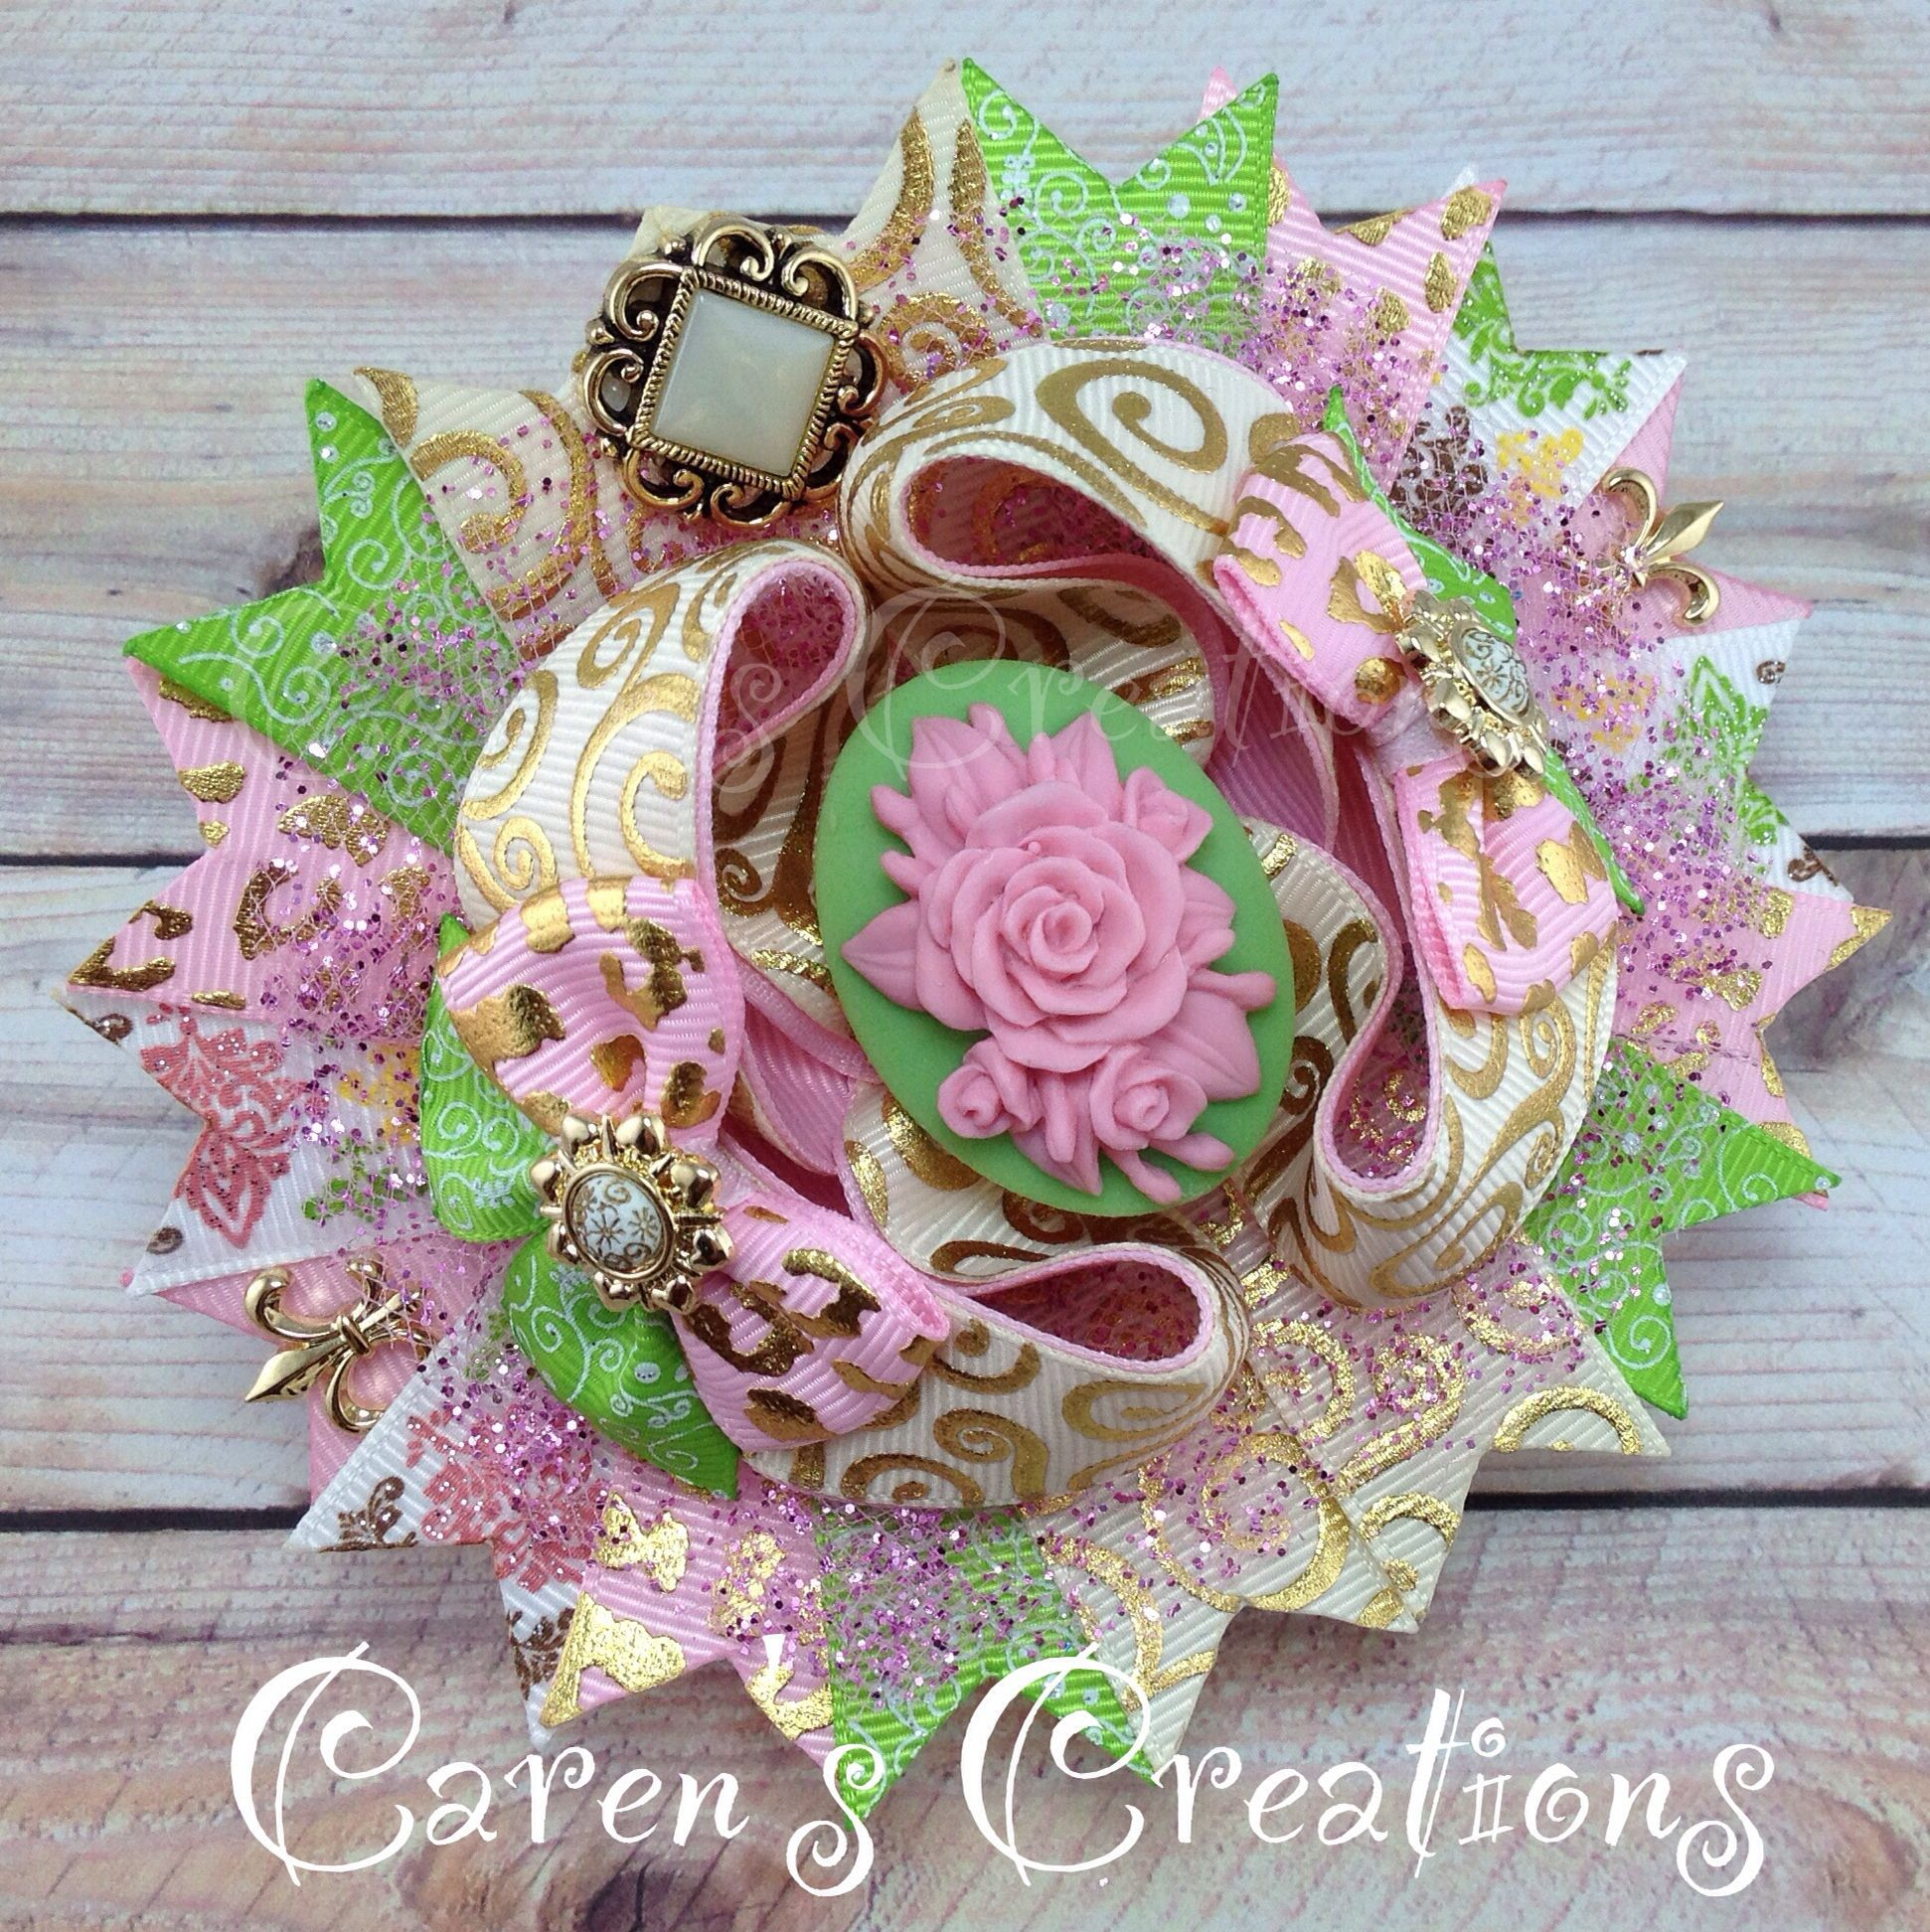 Vintage cameo flowers hair bow, bow, over the top, stacked boutique bow, girl's accessories, grandma's attic